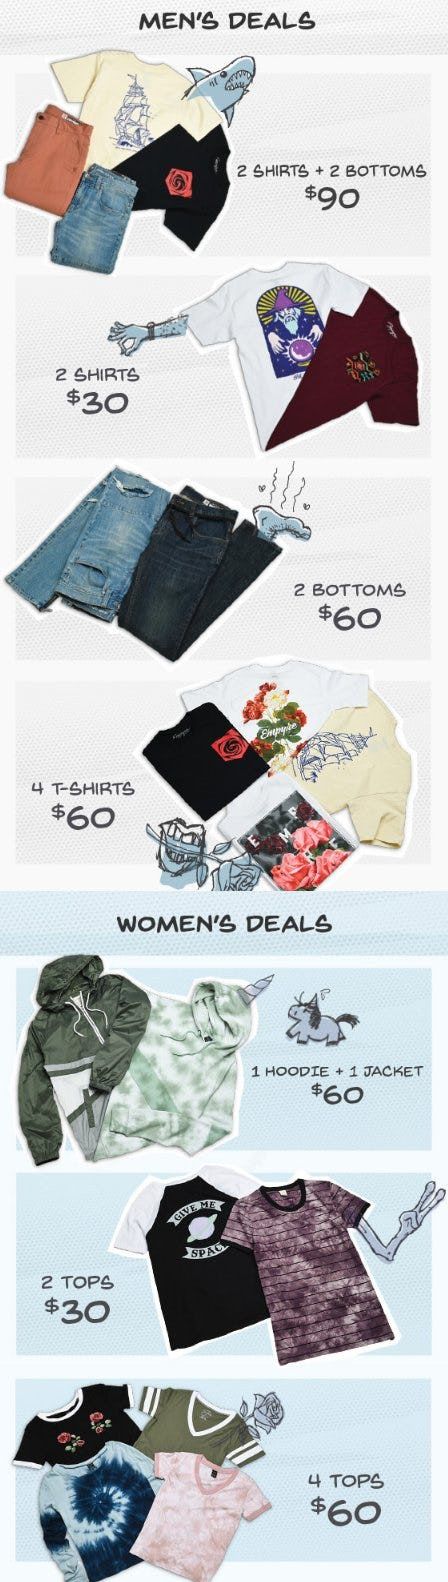 Shop Men's & Women's Deals from Zumiez